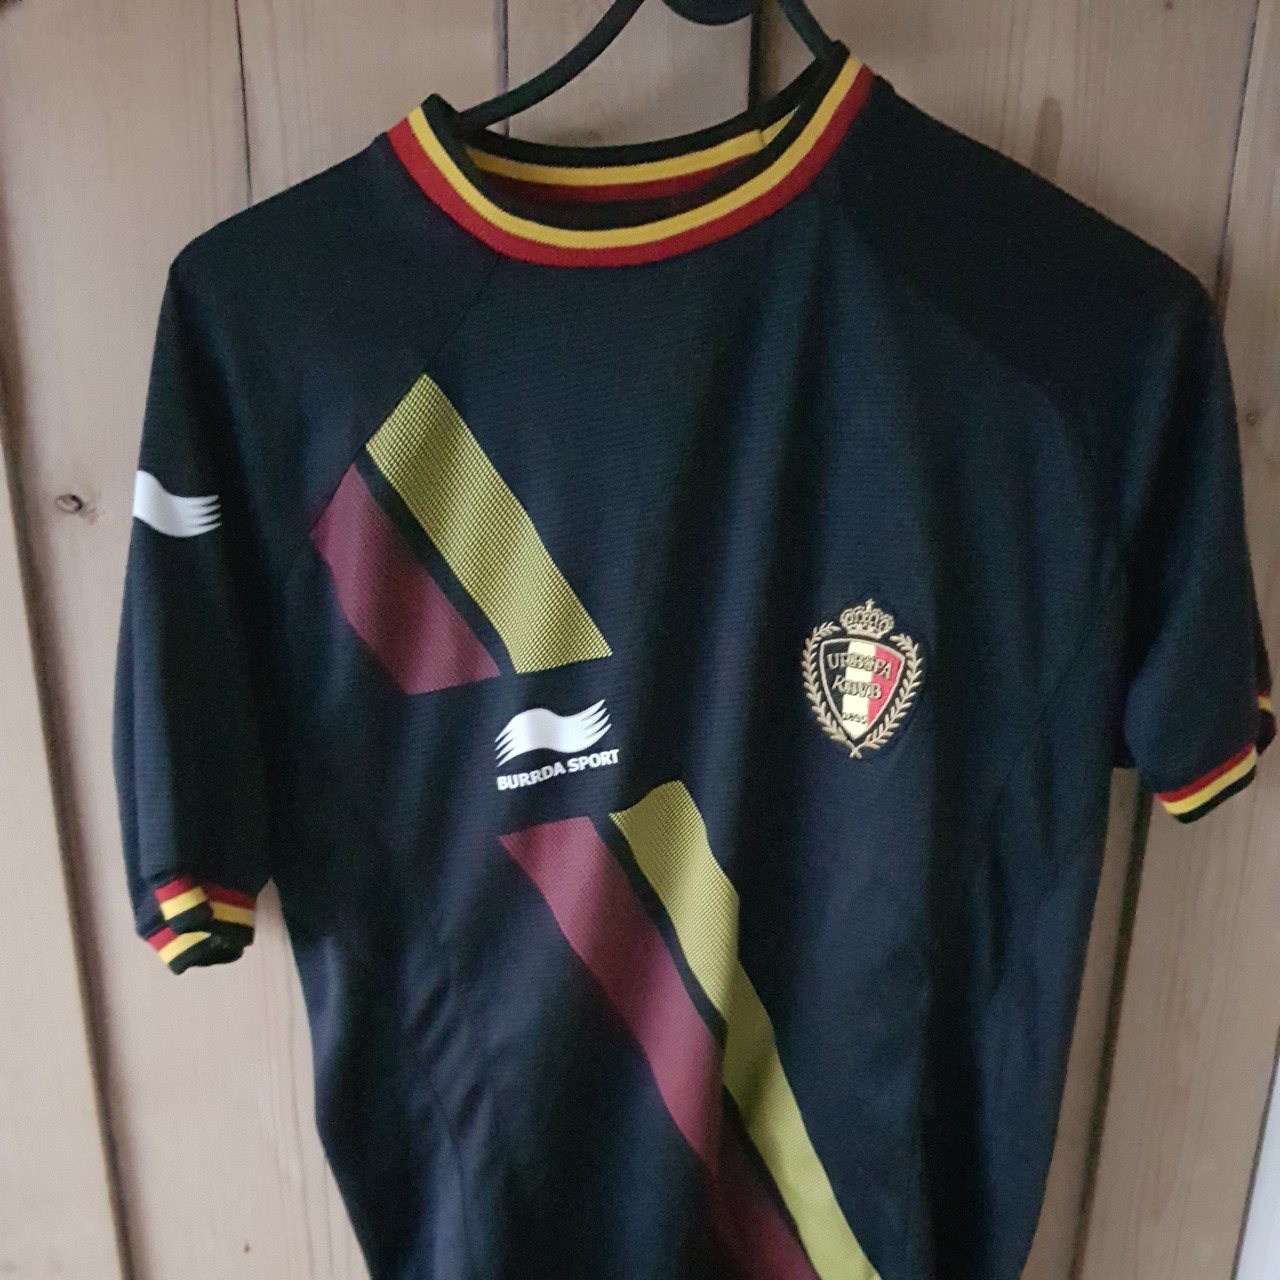 huge discount 0955a 60089 Retro 2014 Belgium world cup kit. 10/10 condition - Depop